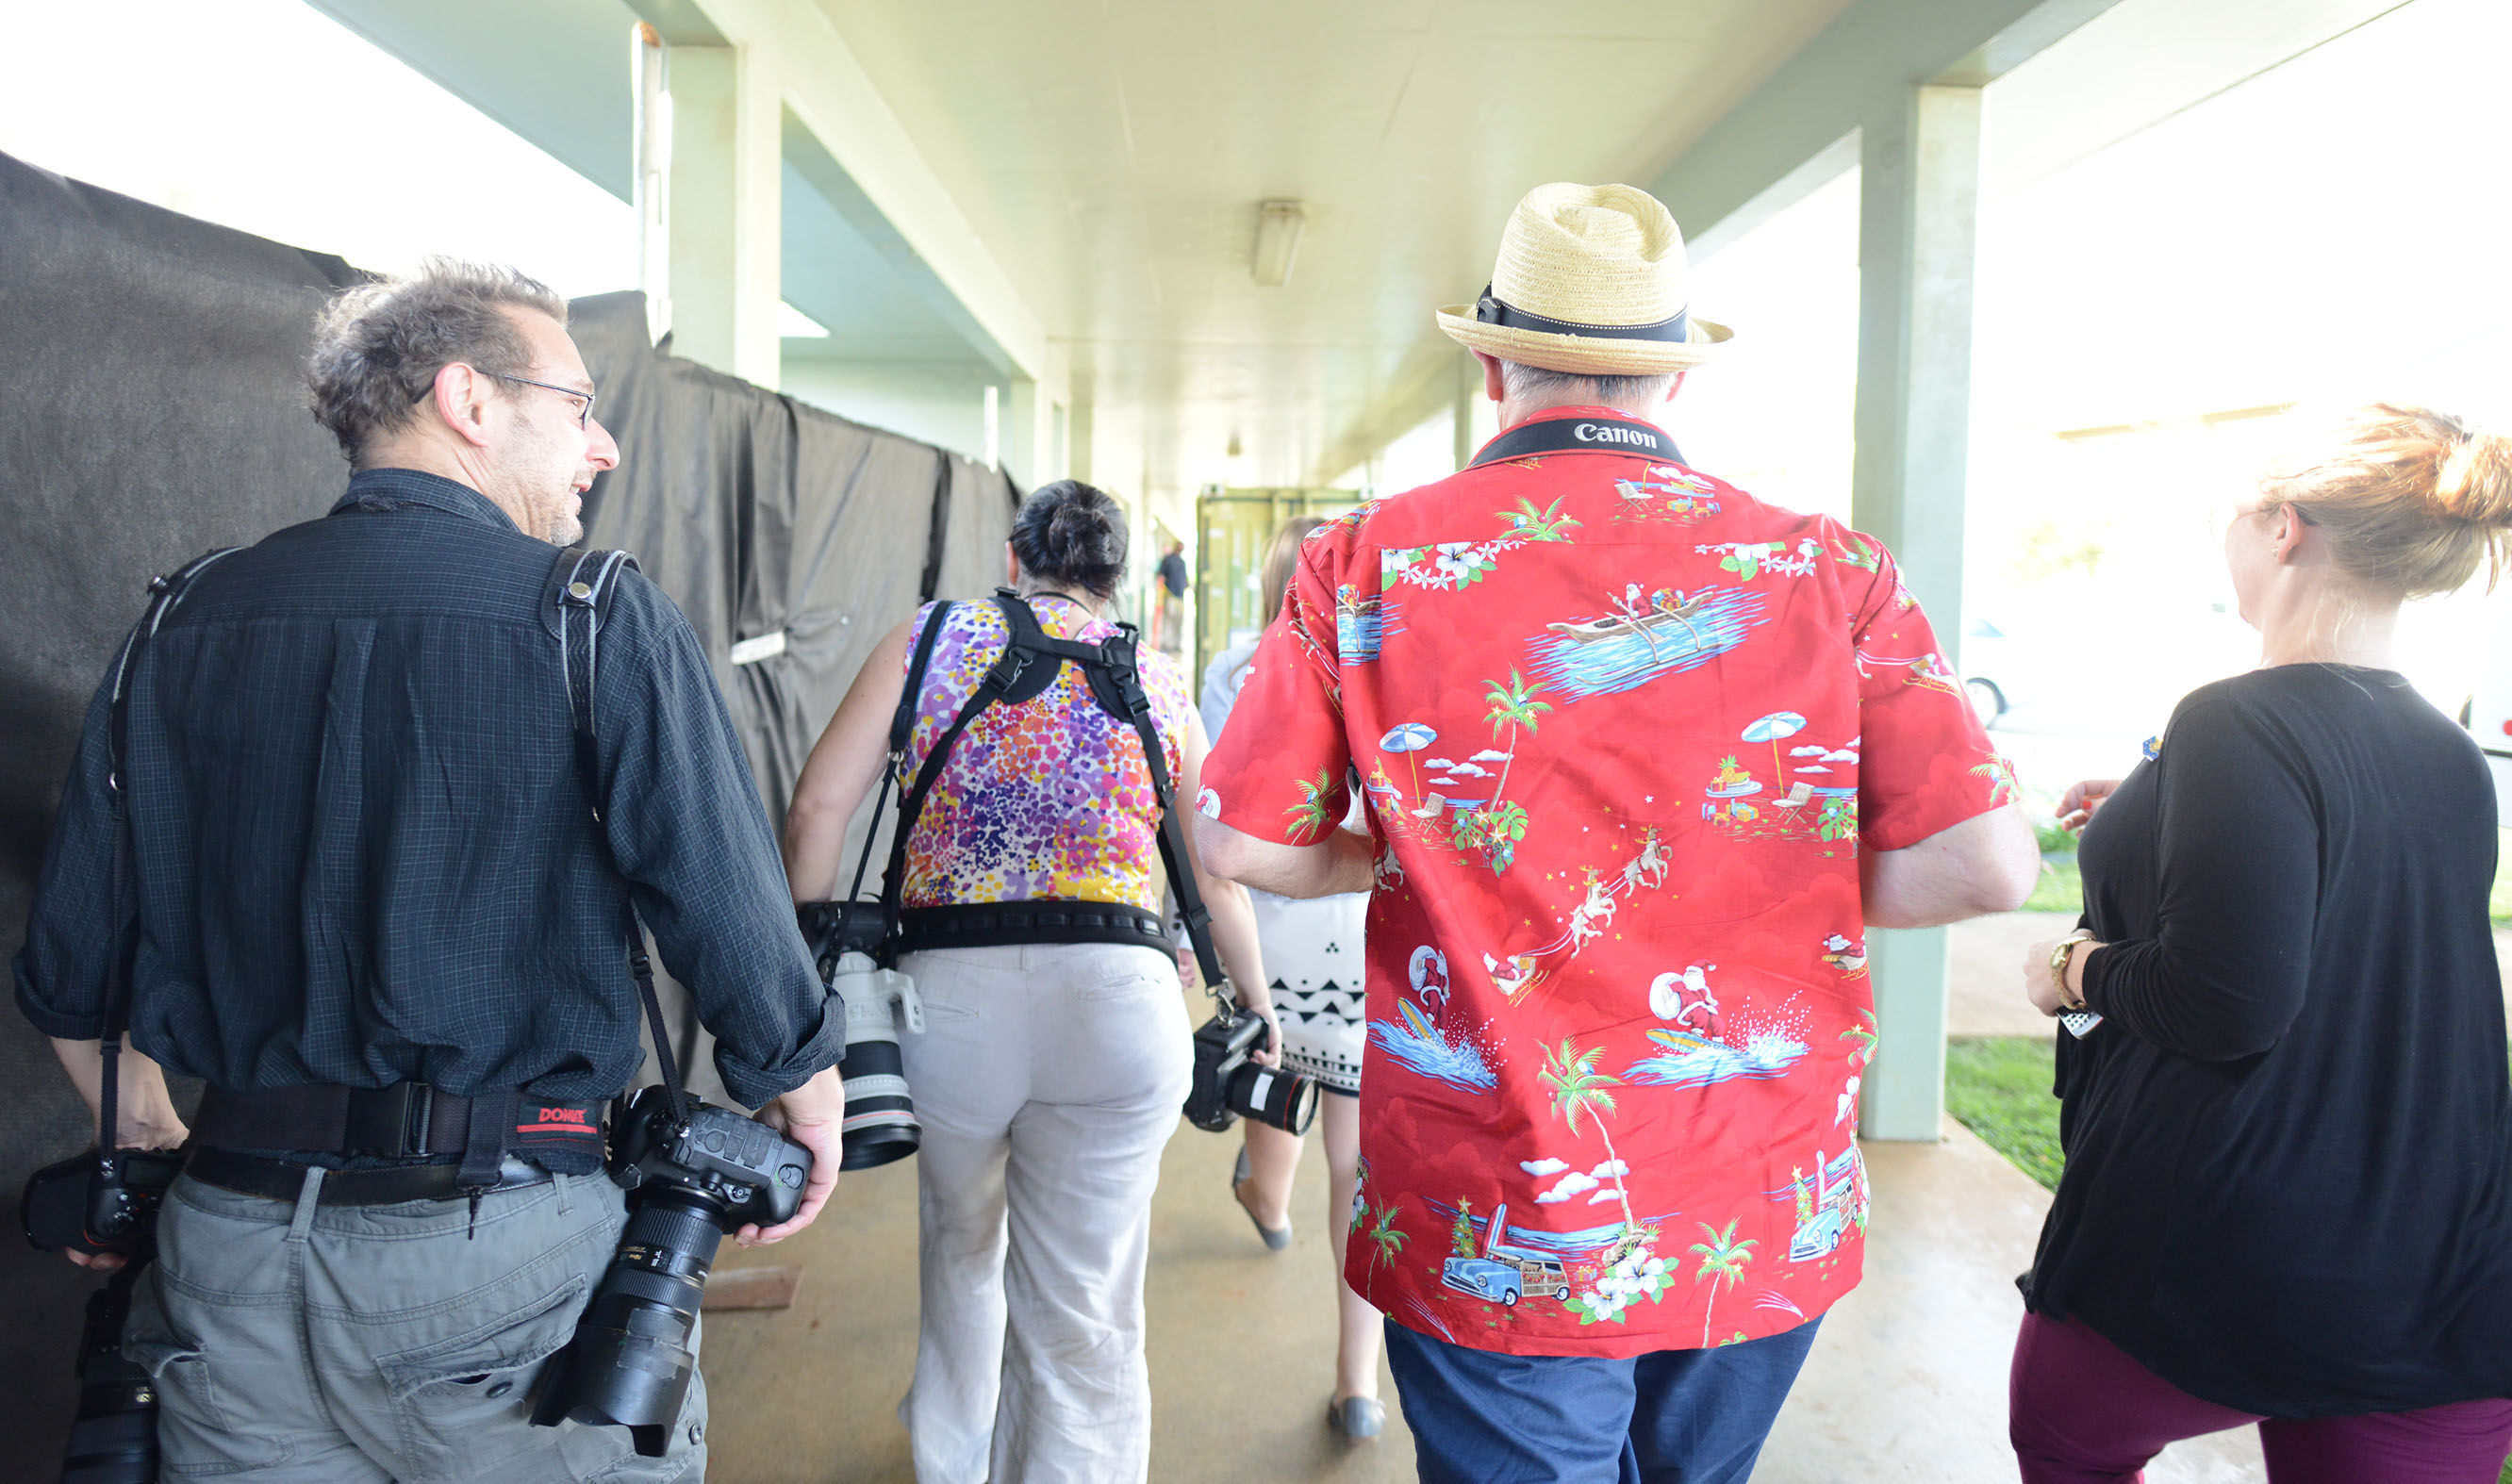 White House travel pool photographers hustle to get to their positions outside Anderson Hall at Marine Corps Base Hawaii for a presidential address to an audience of 75-100 service members and their relatives.